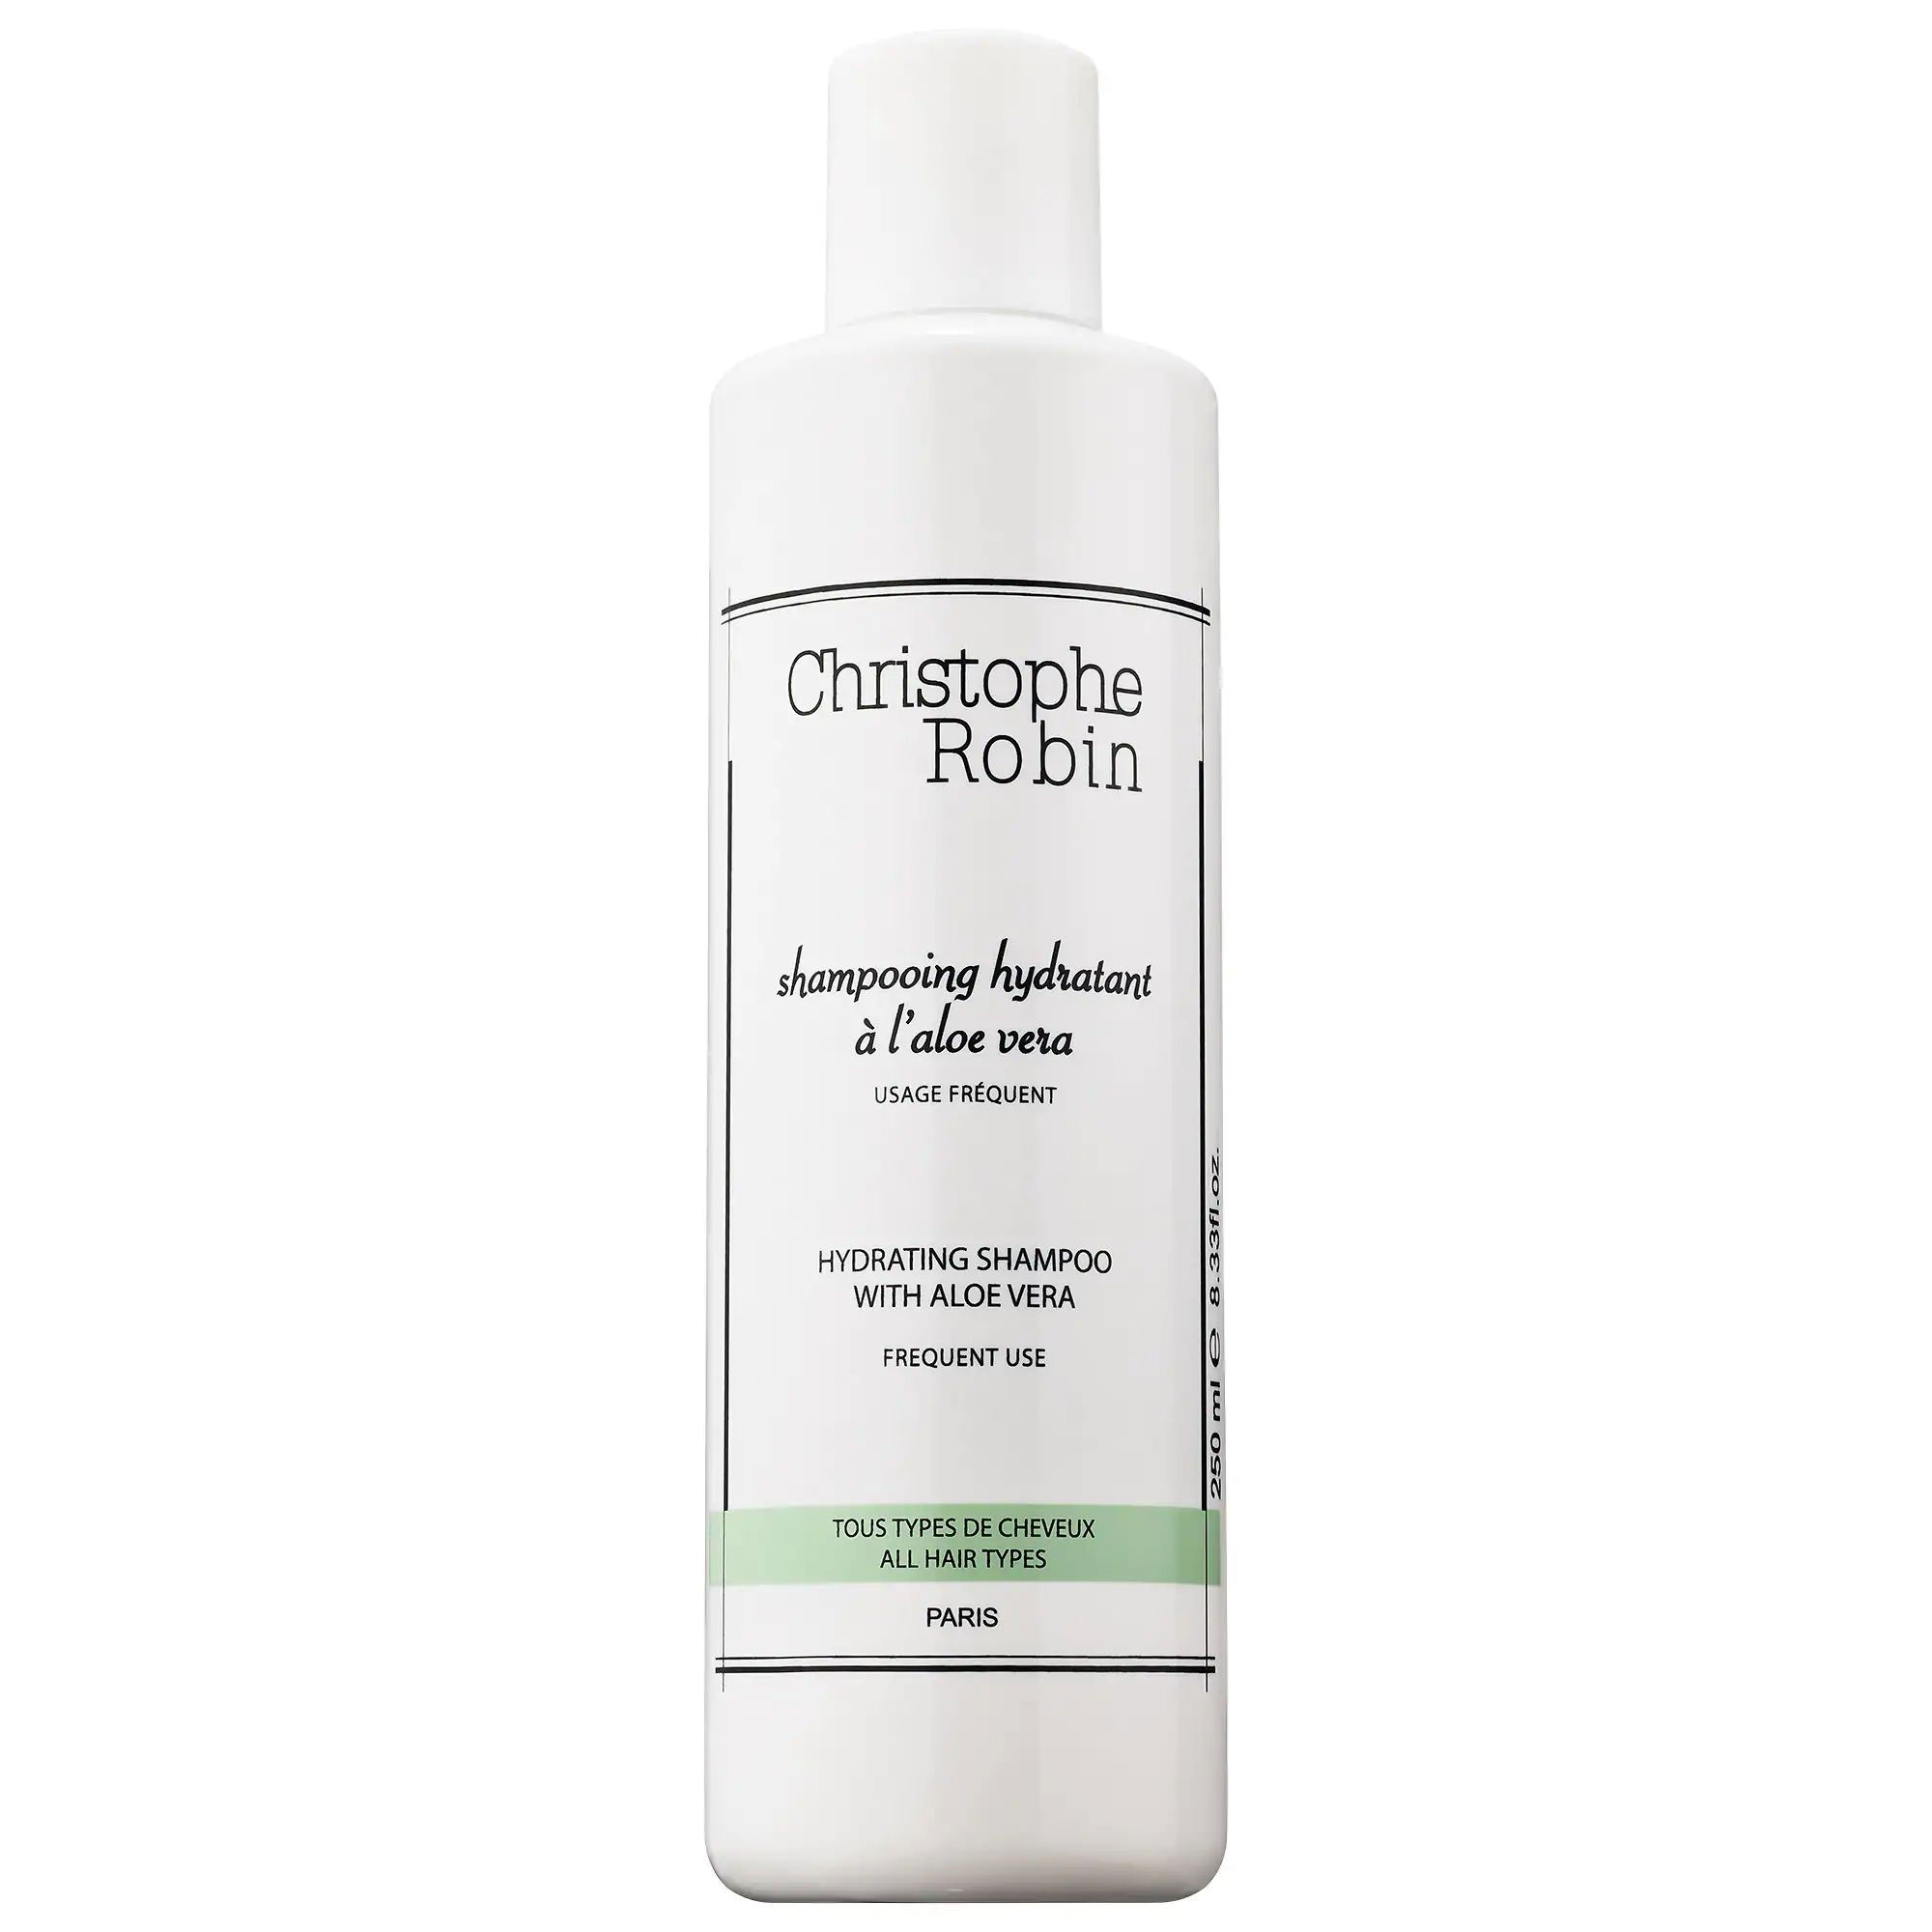 Christophe Robin Hydrating Shampoo with Aloe Vera